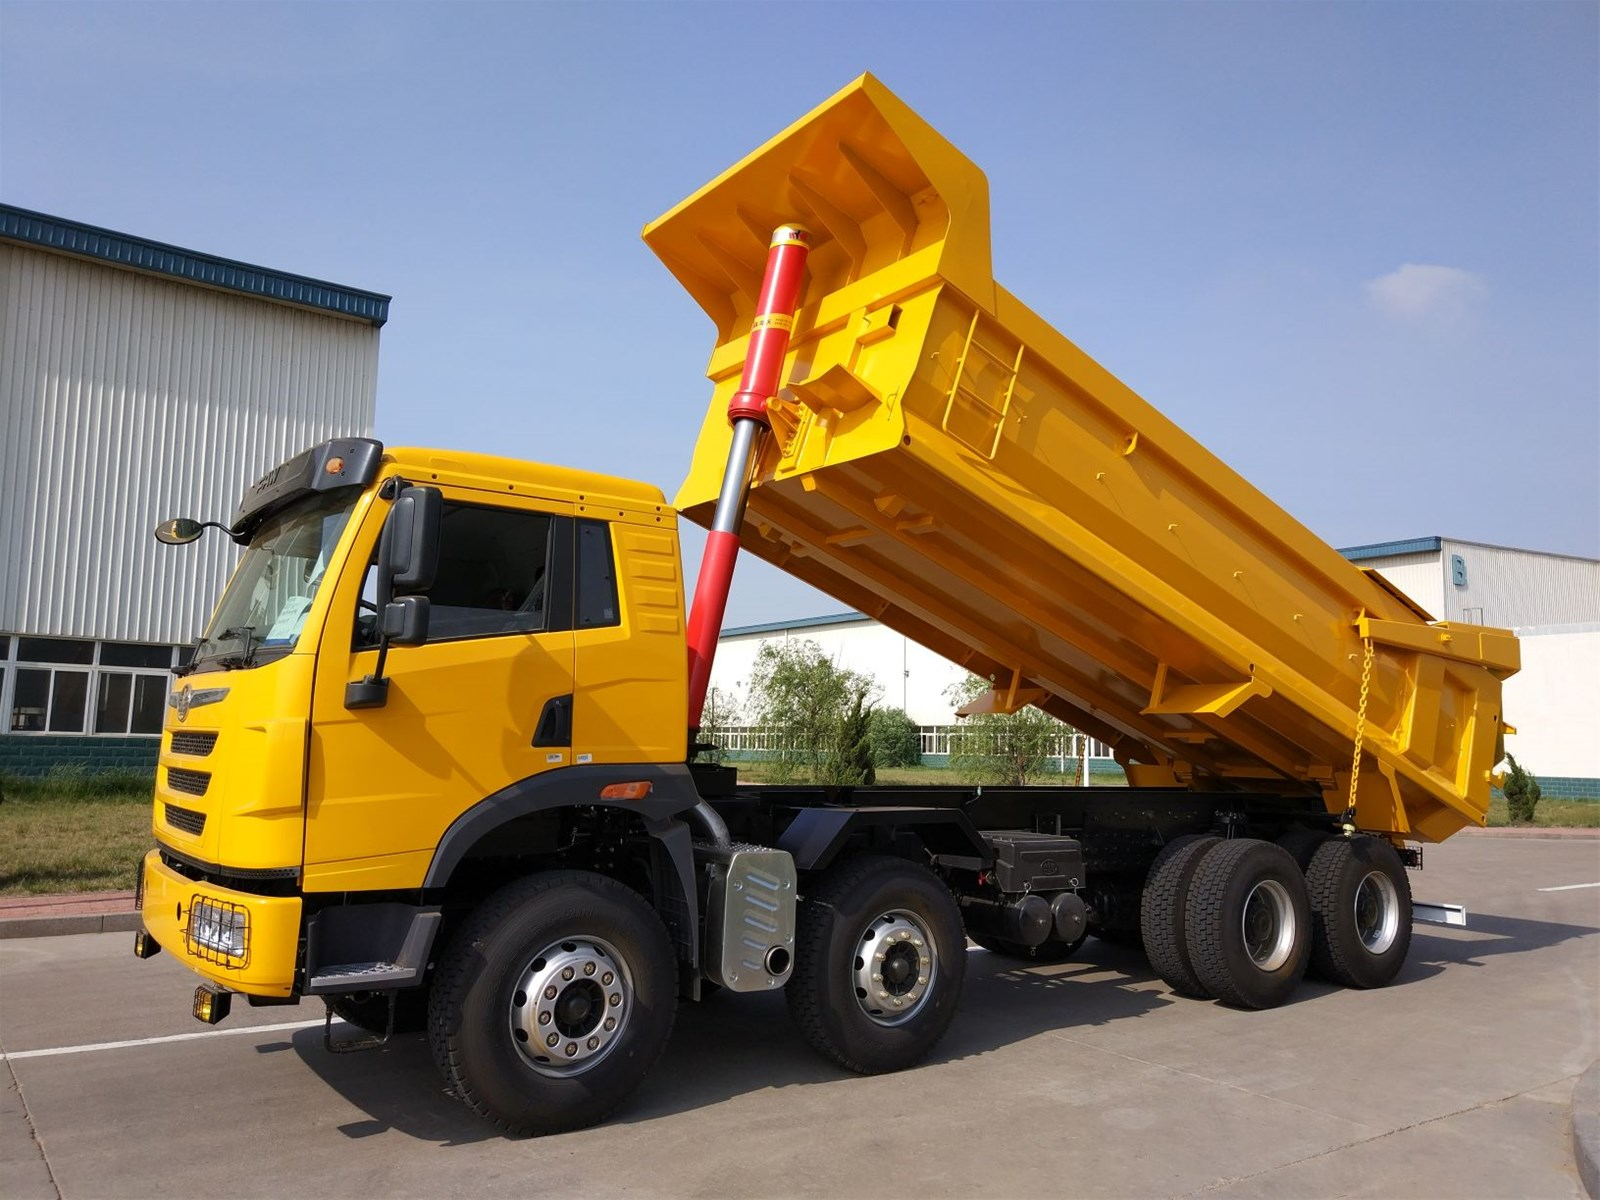 SINOTRUK HOWO 84 DUMP TRUCK 40T IN STOCK The configuration can be replaced on demand